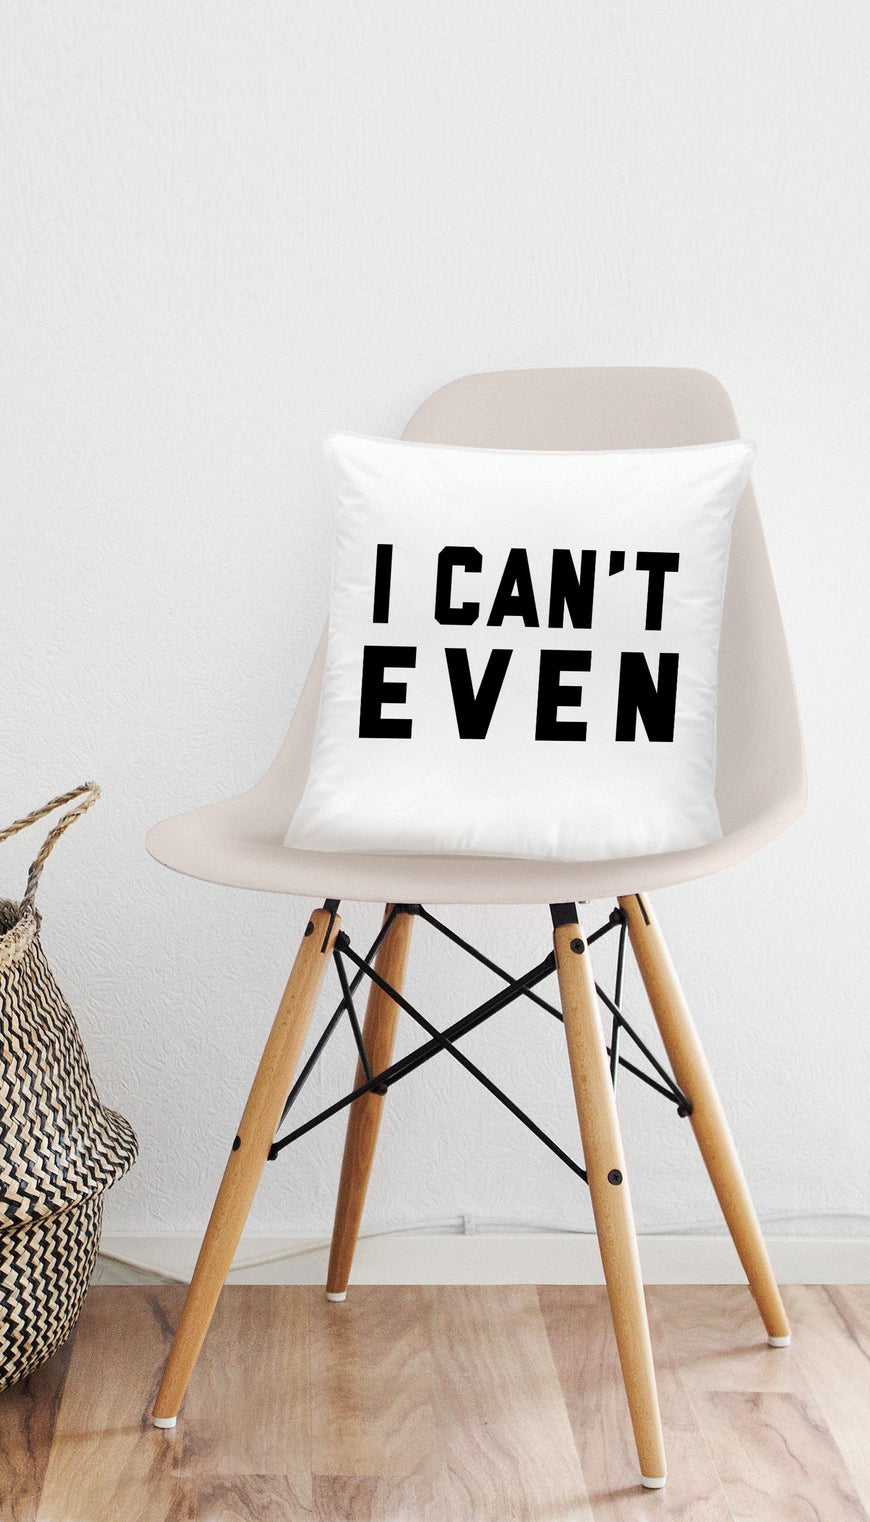 I Can't Even Funny & Clever Home Throw Pillow Gift | Sarcastic ME